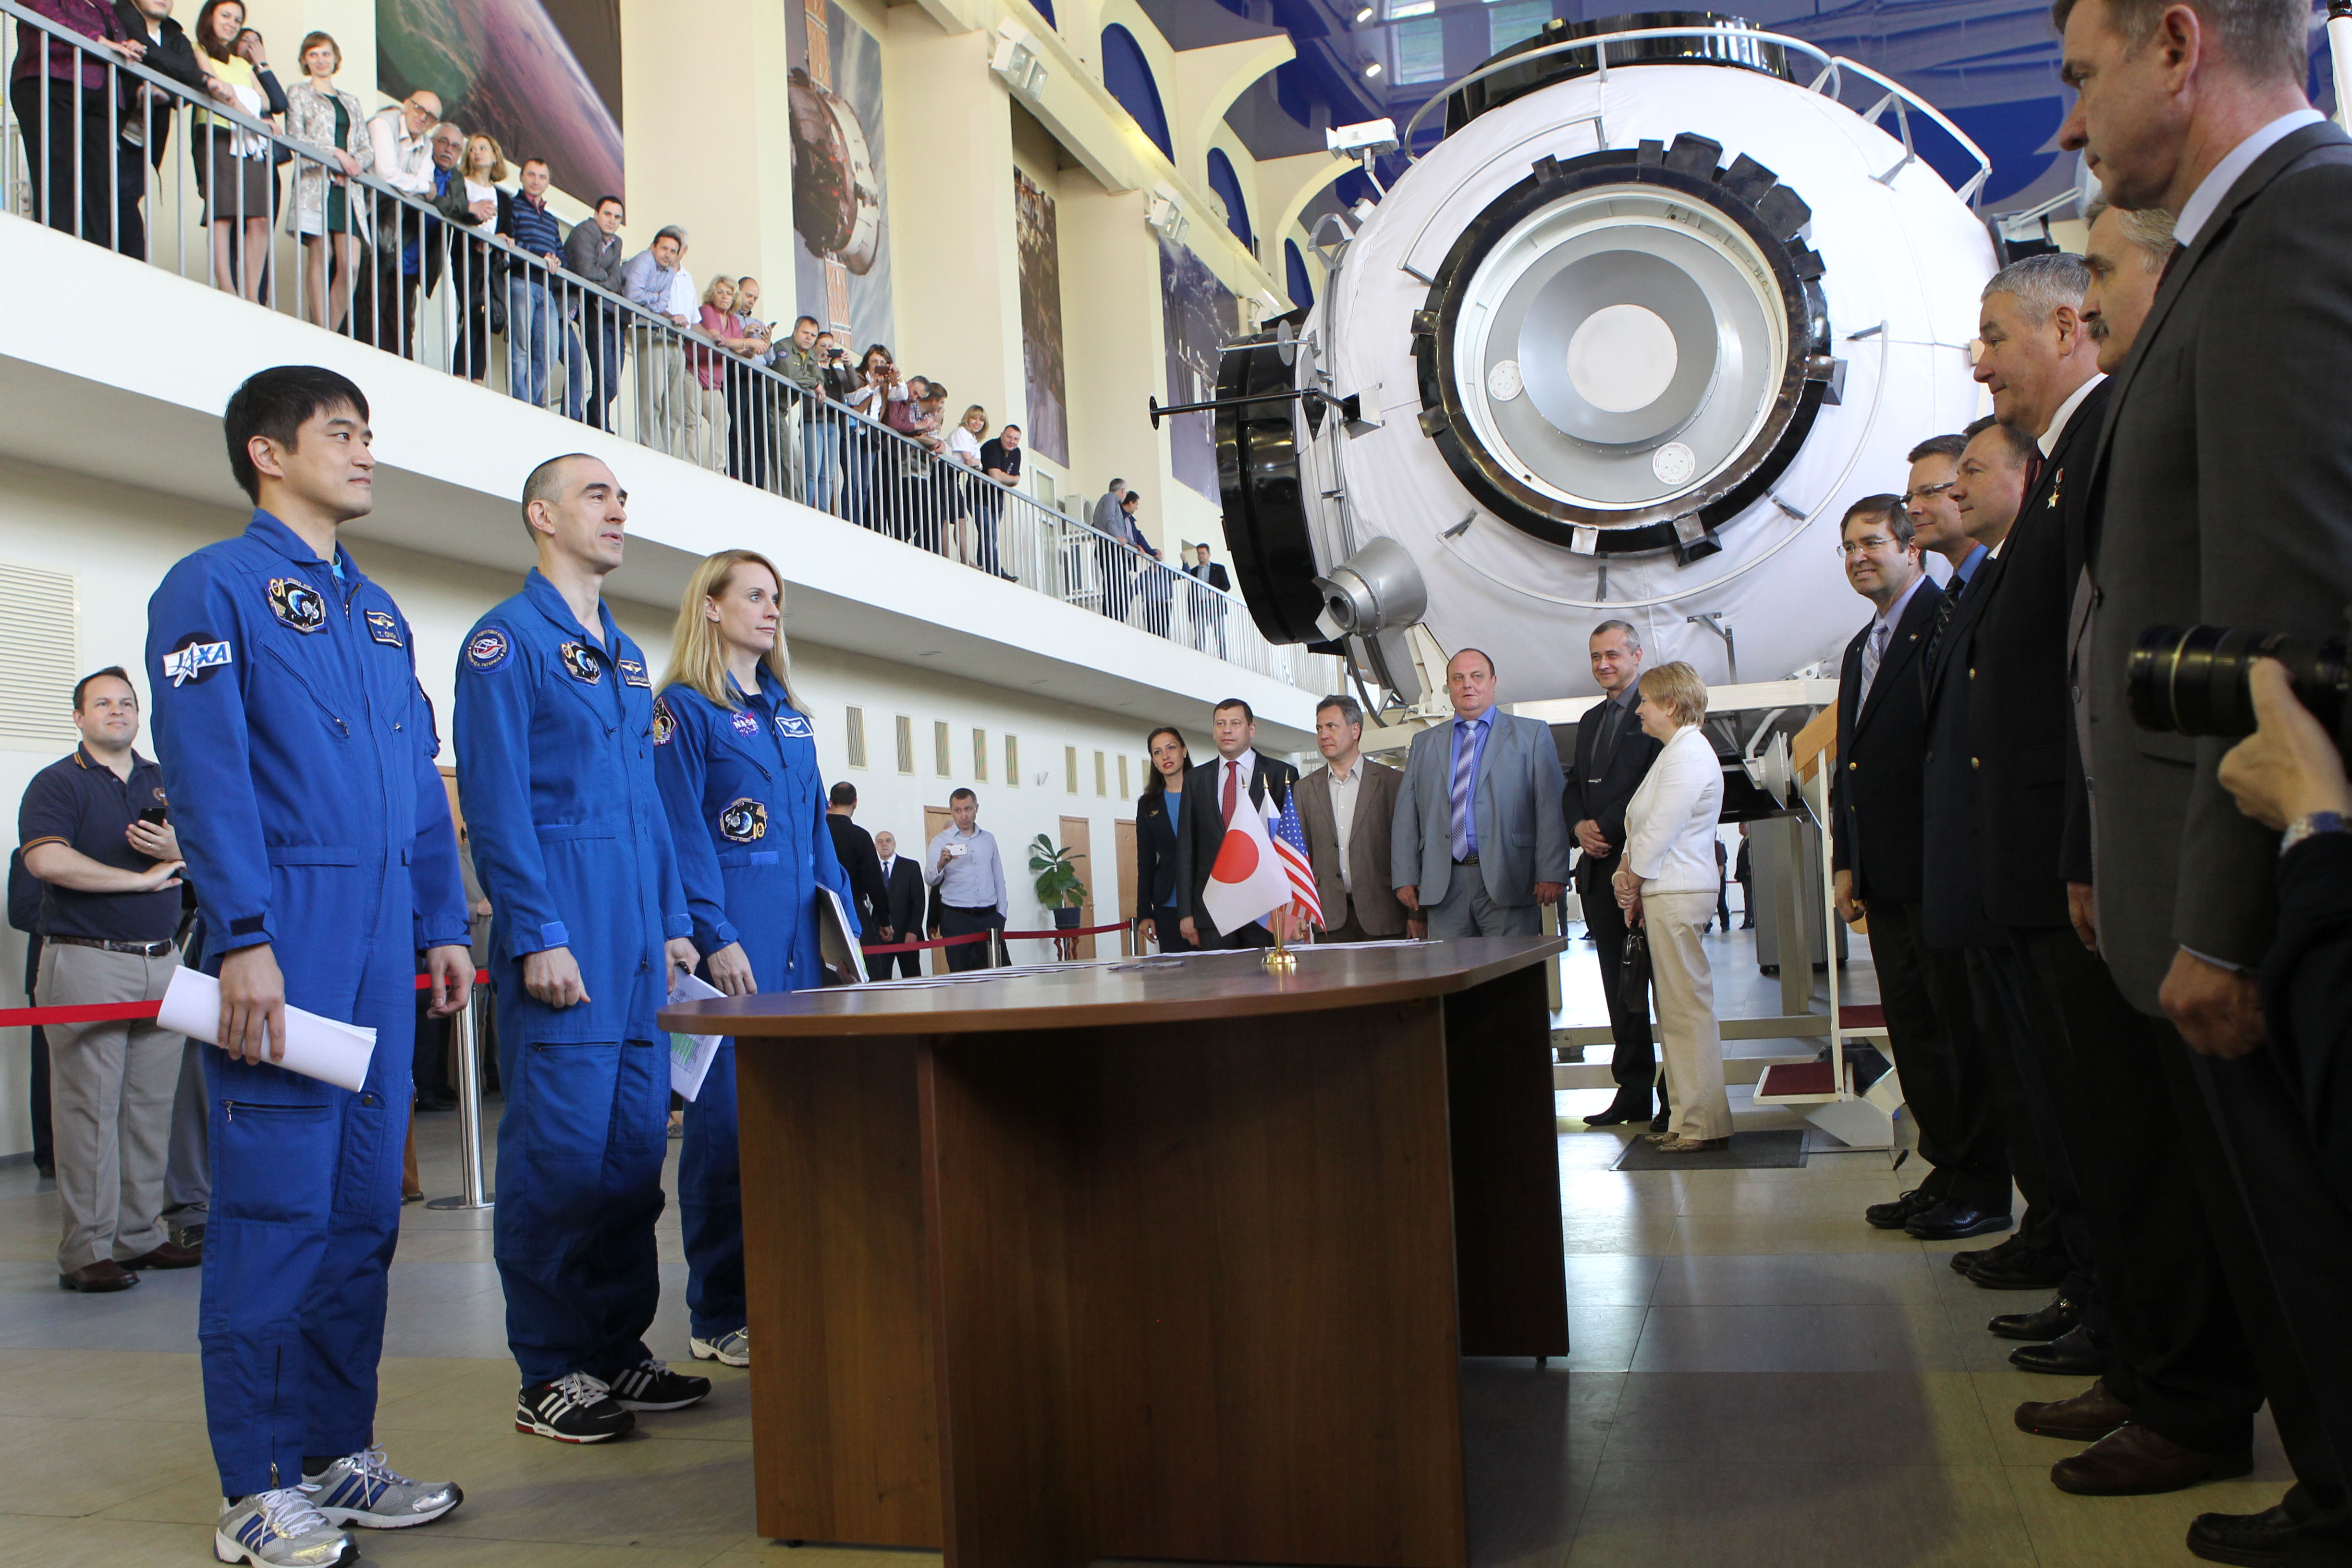 at the gagarin cosmonaut training center in star city russia